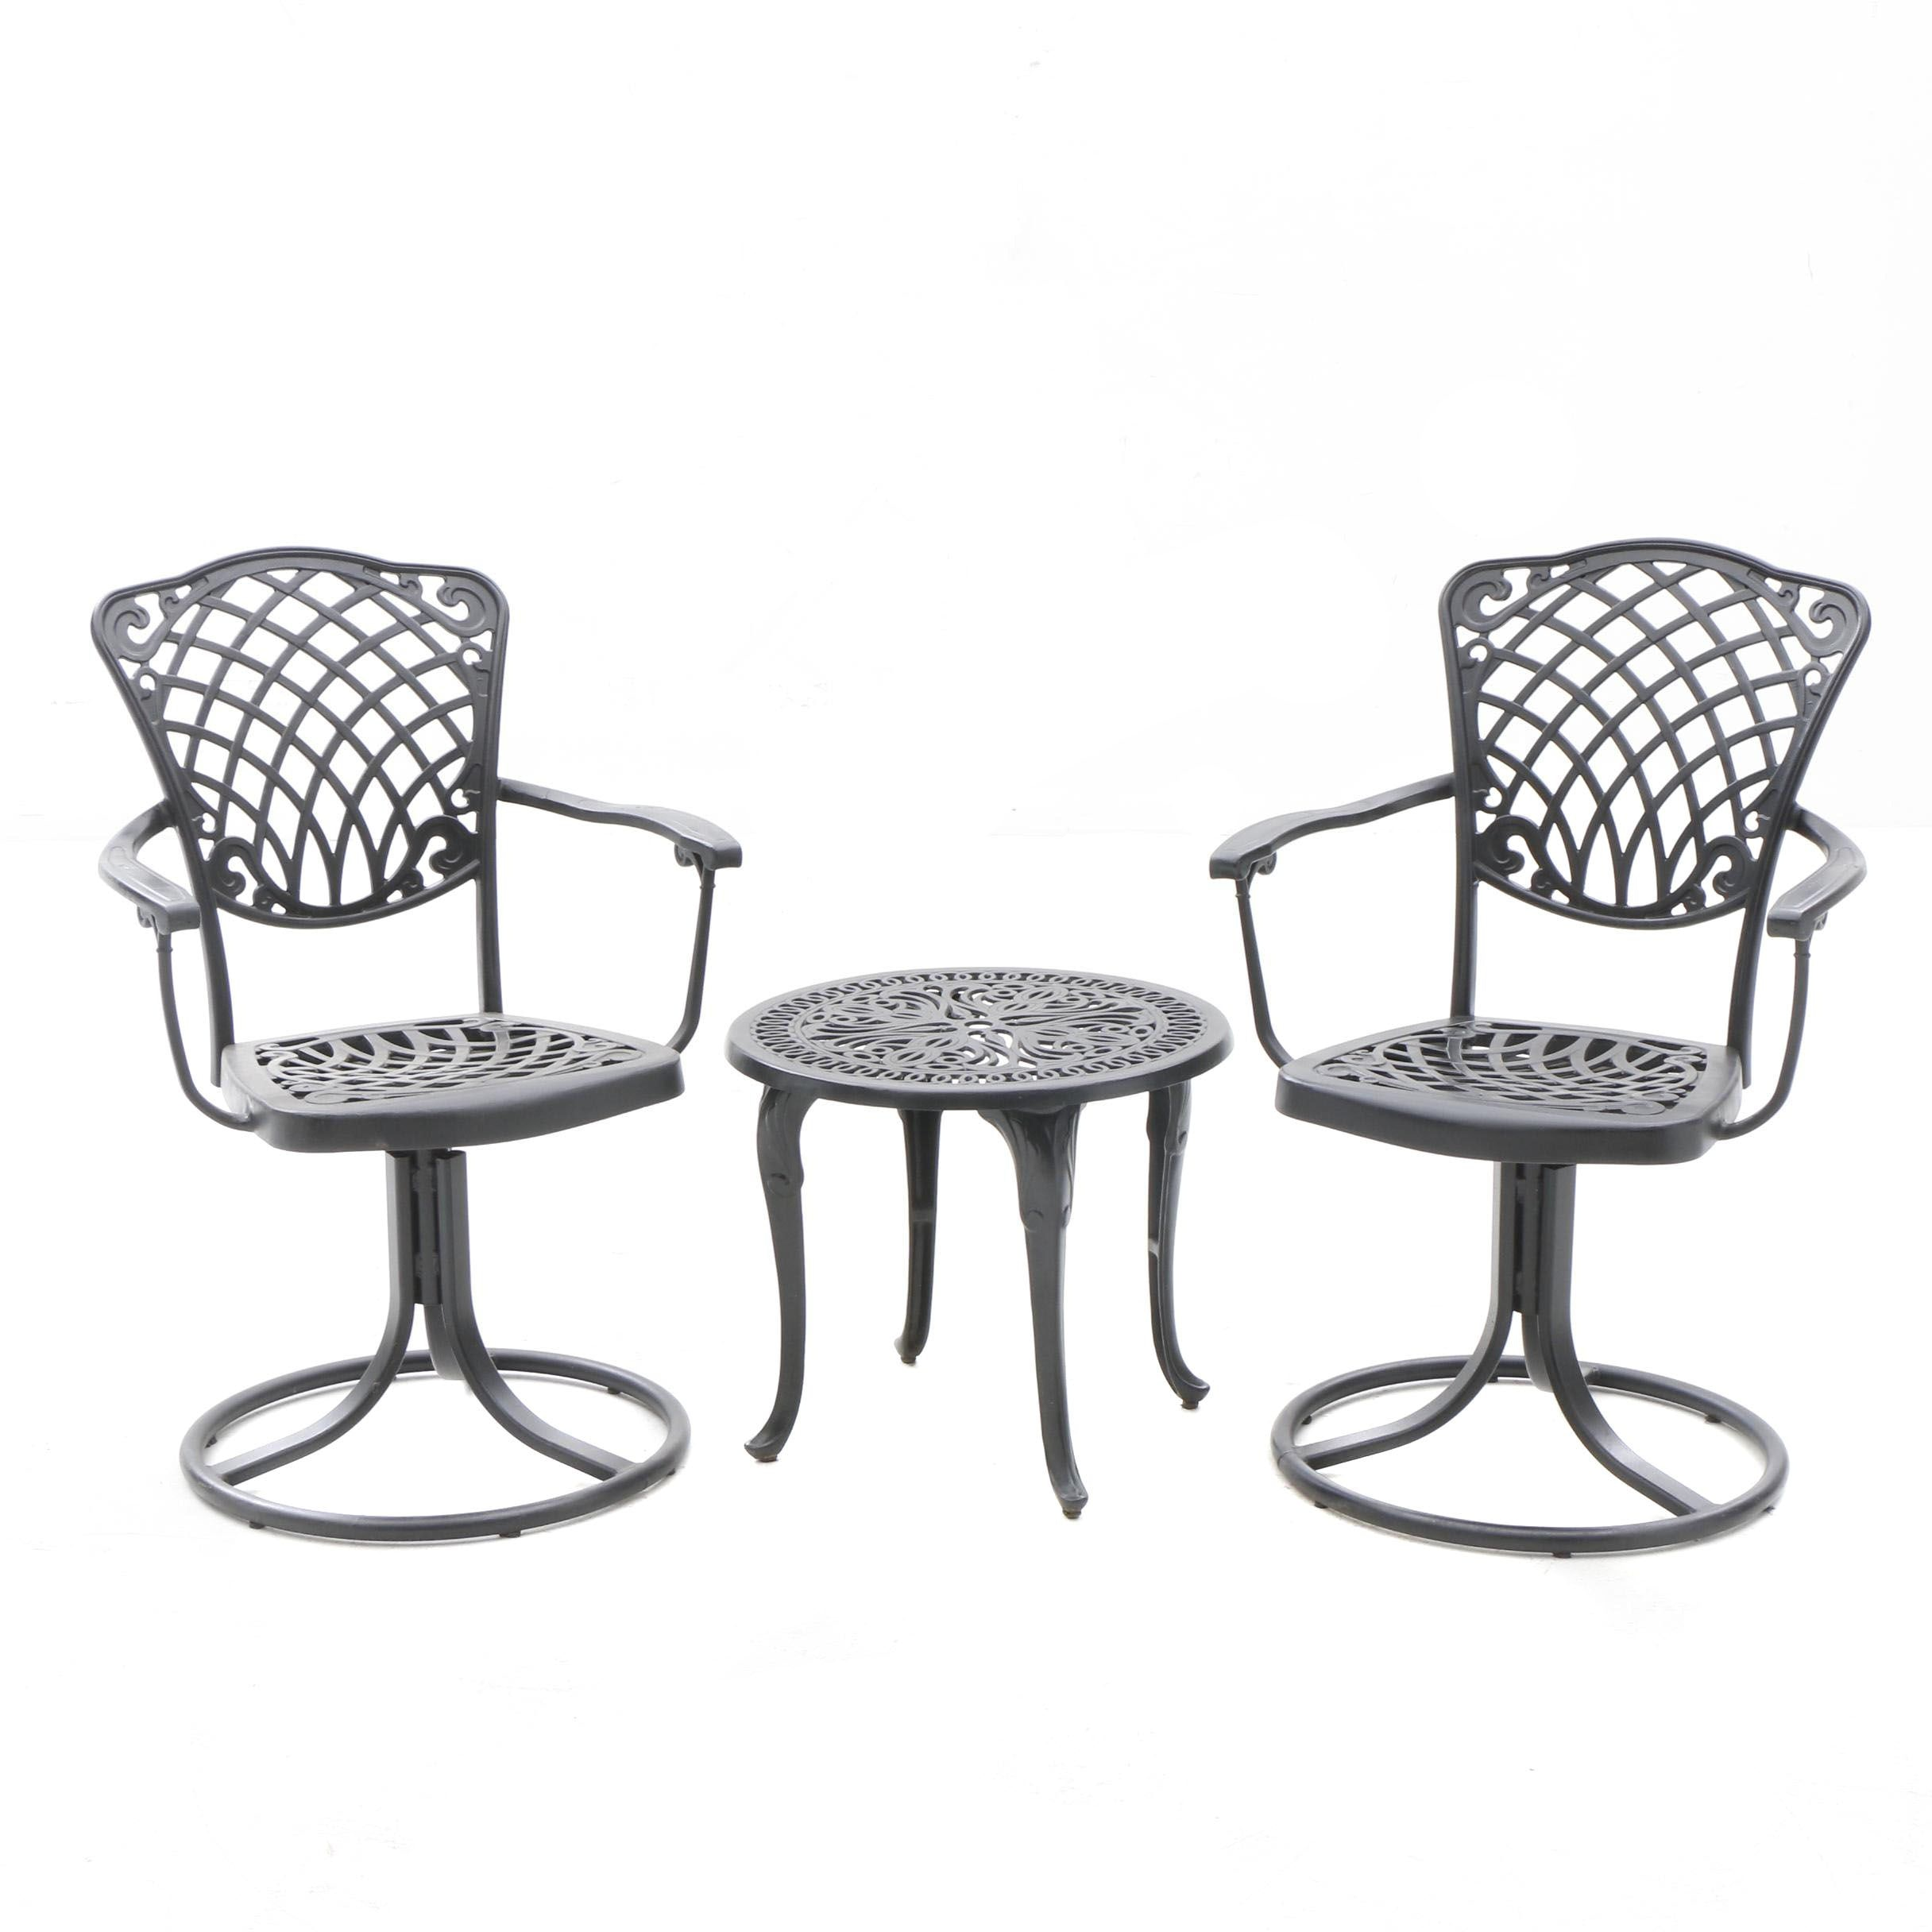 Outdoor Lifestyle Metal Patio Swivel Armchairs and Side Table in Black